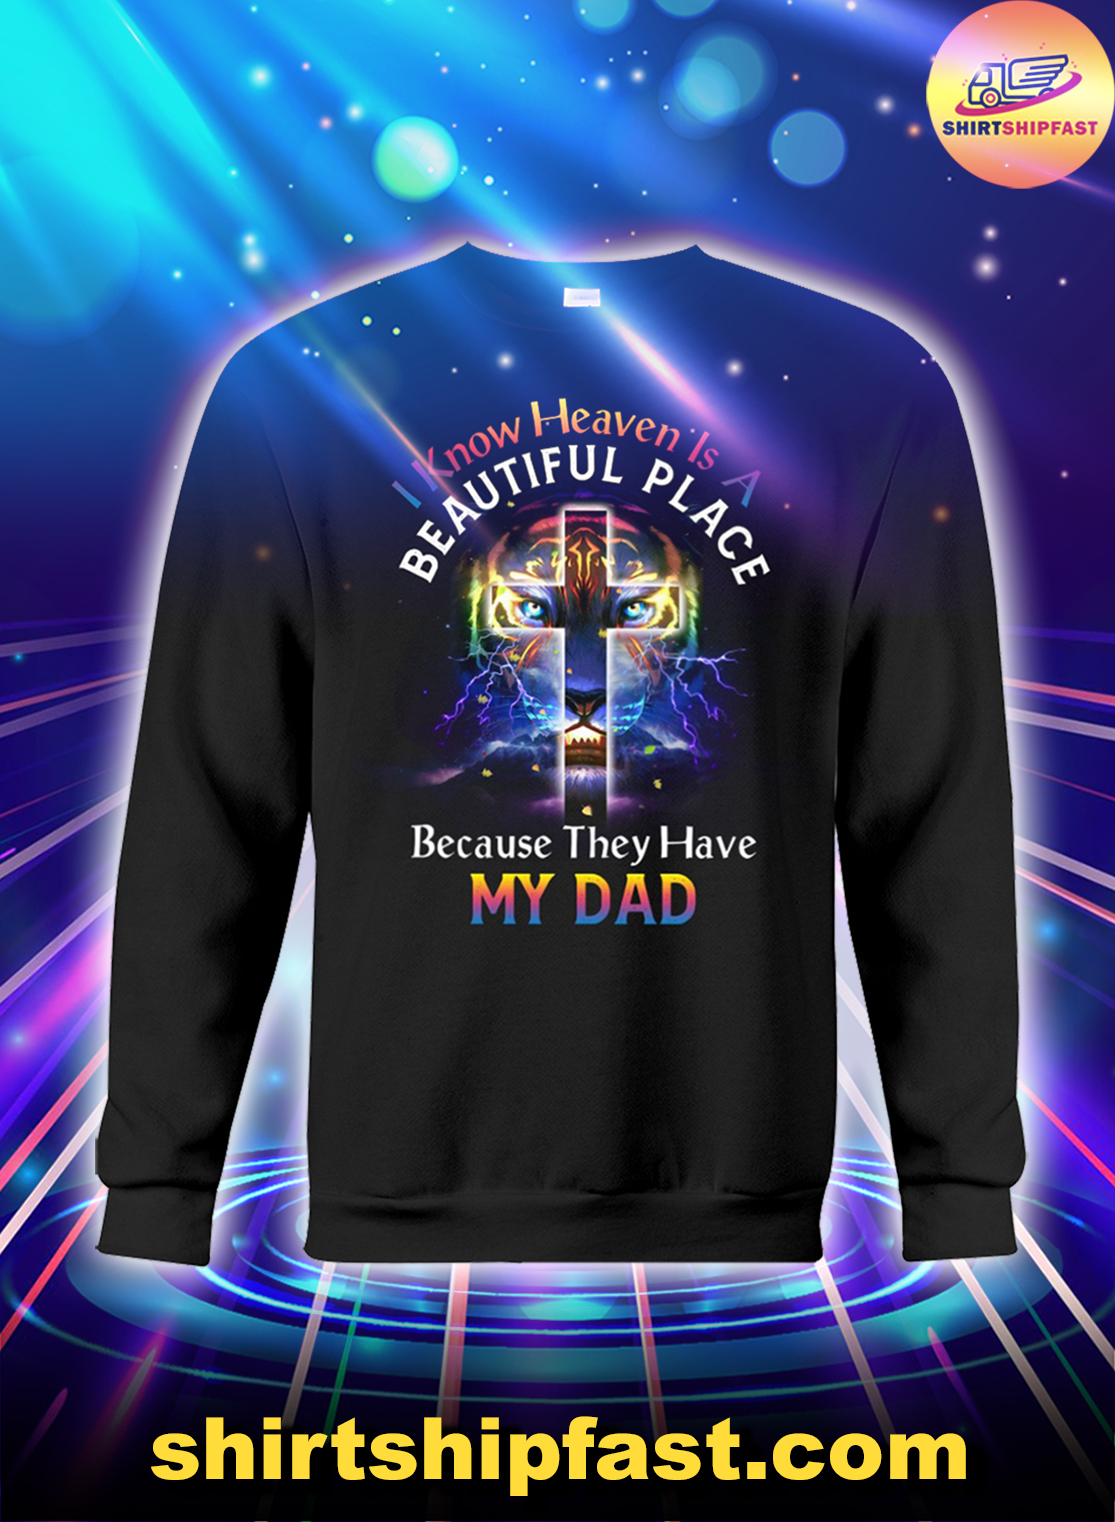 Cross-I-know-heaven-is-a-beautiful-place-because-they-have-my-dad-sweatshirt-2